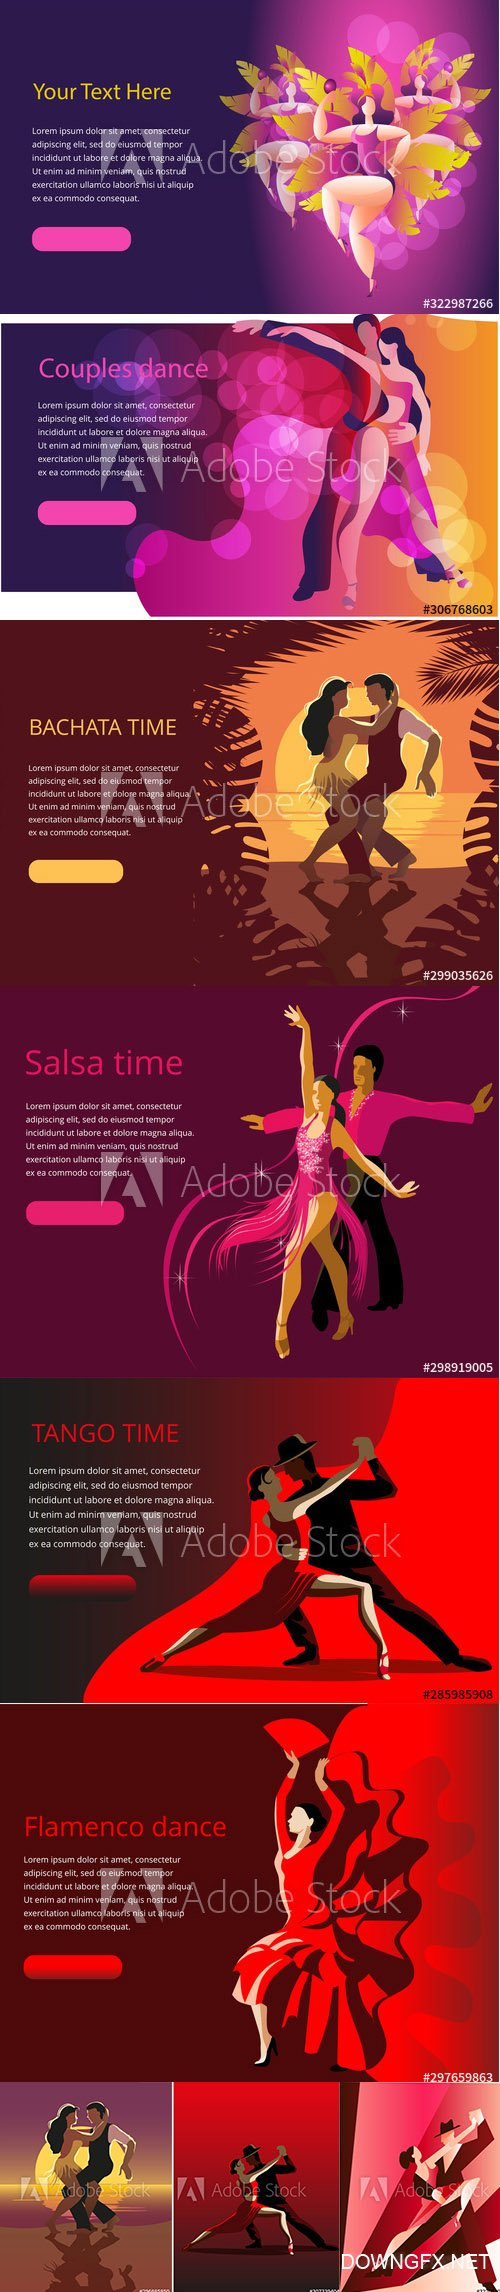 Beautiful couple dancing illustrations